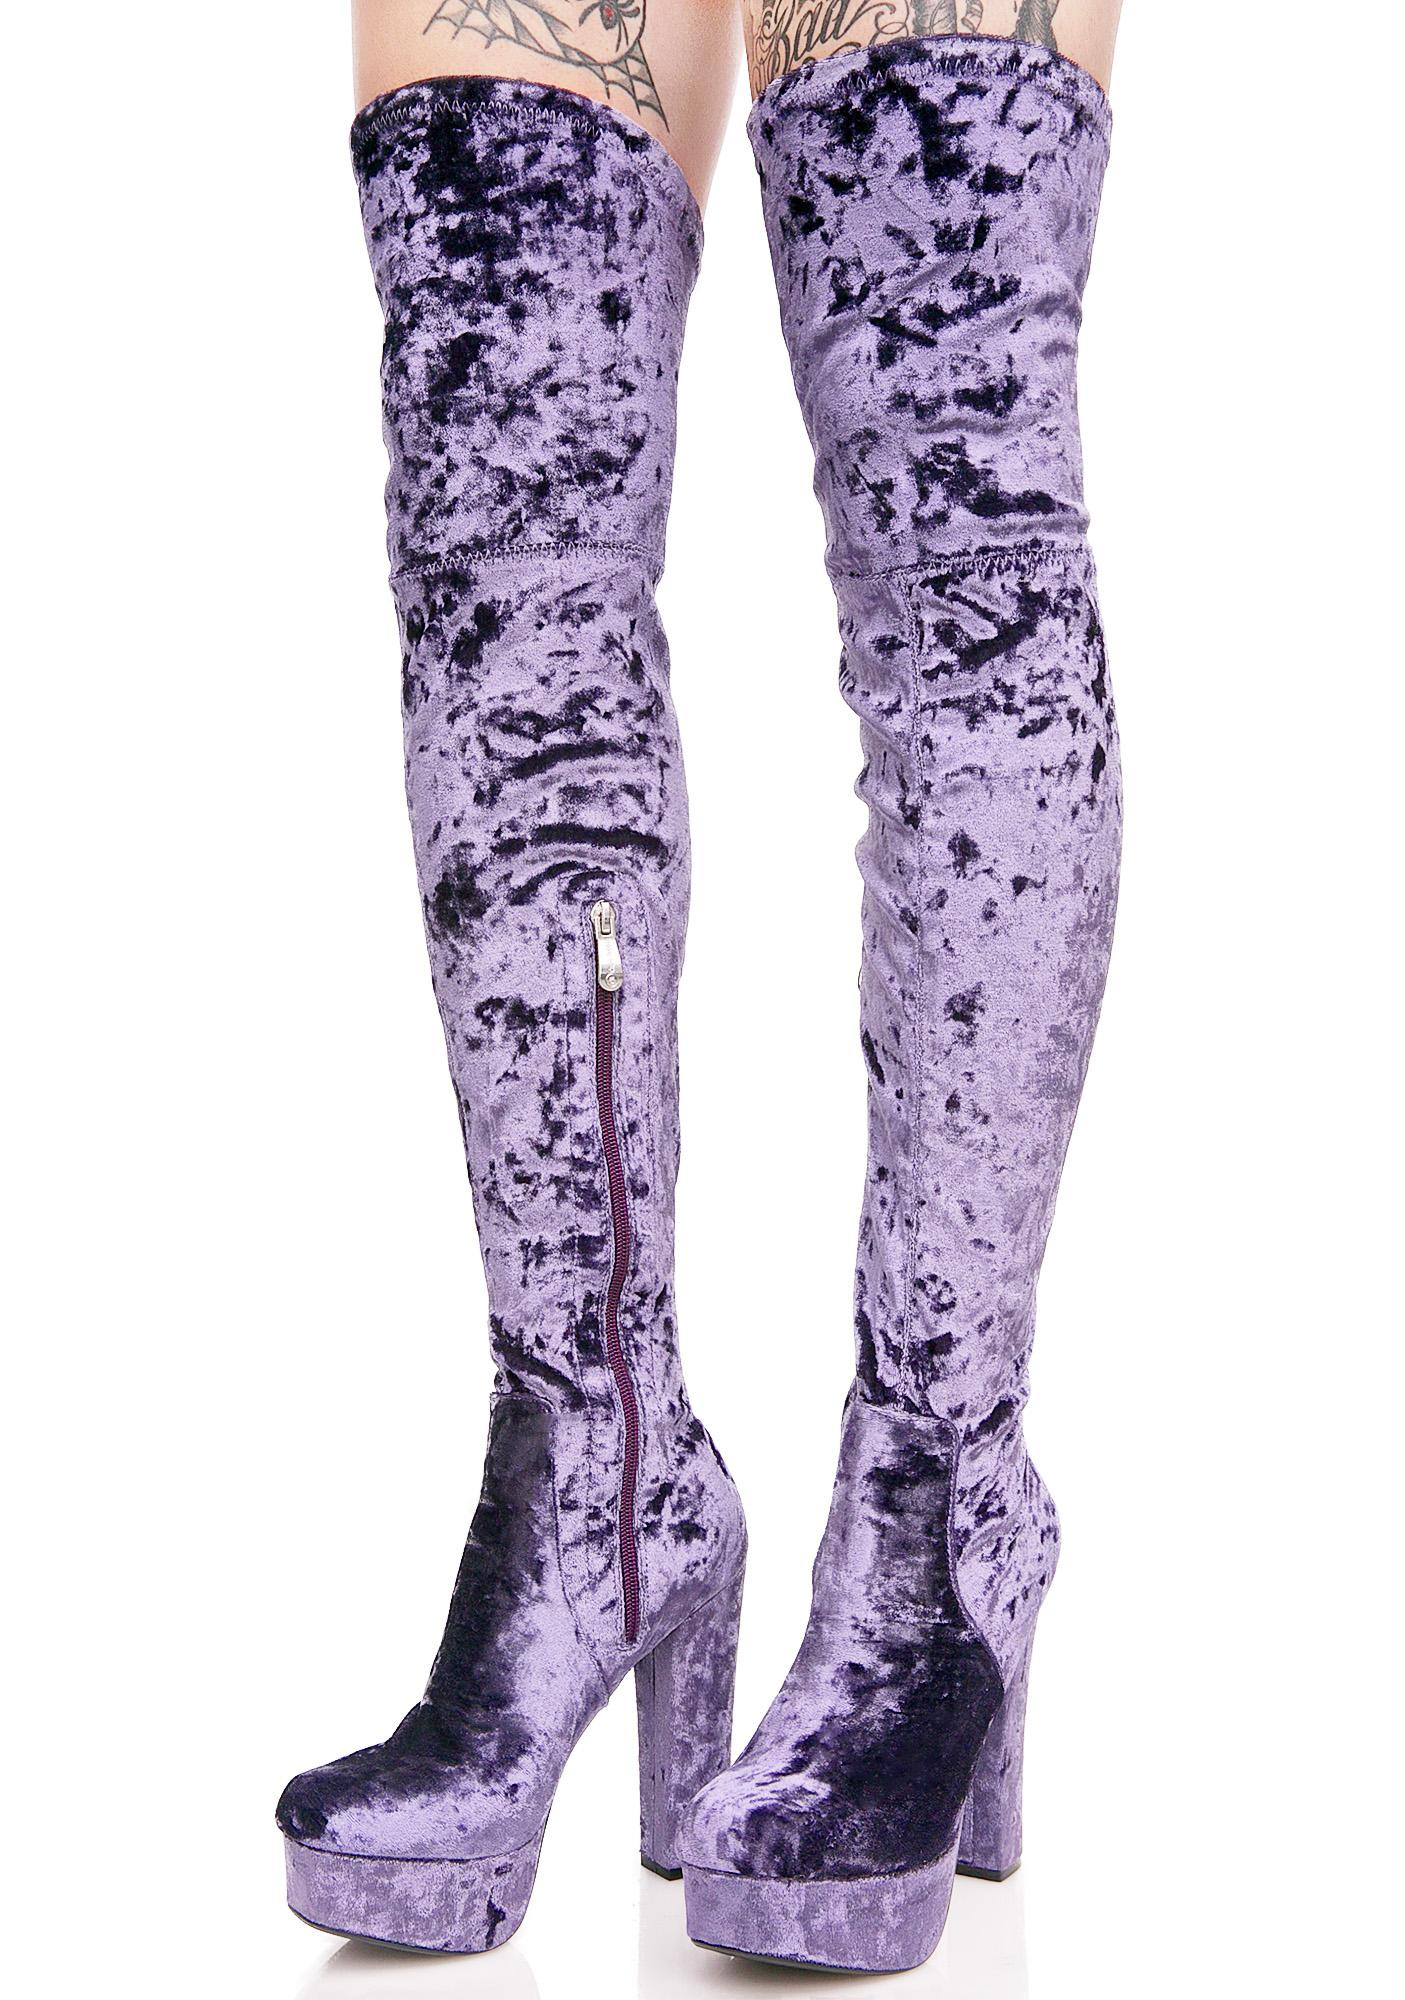 Hazy Elle Thigh-High Boots